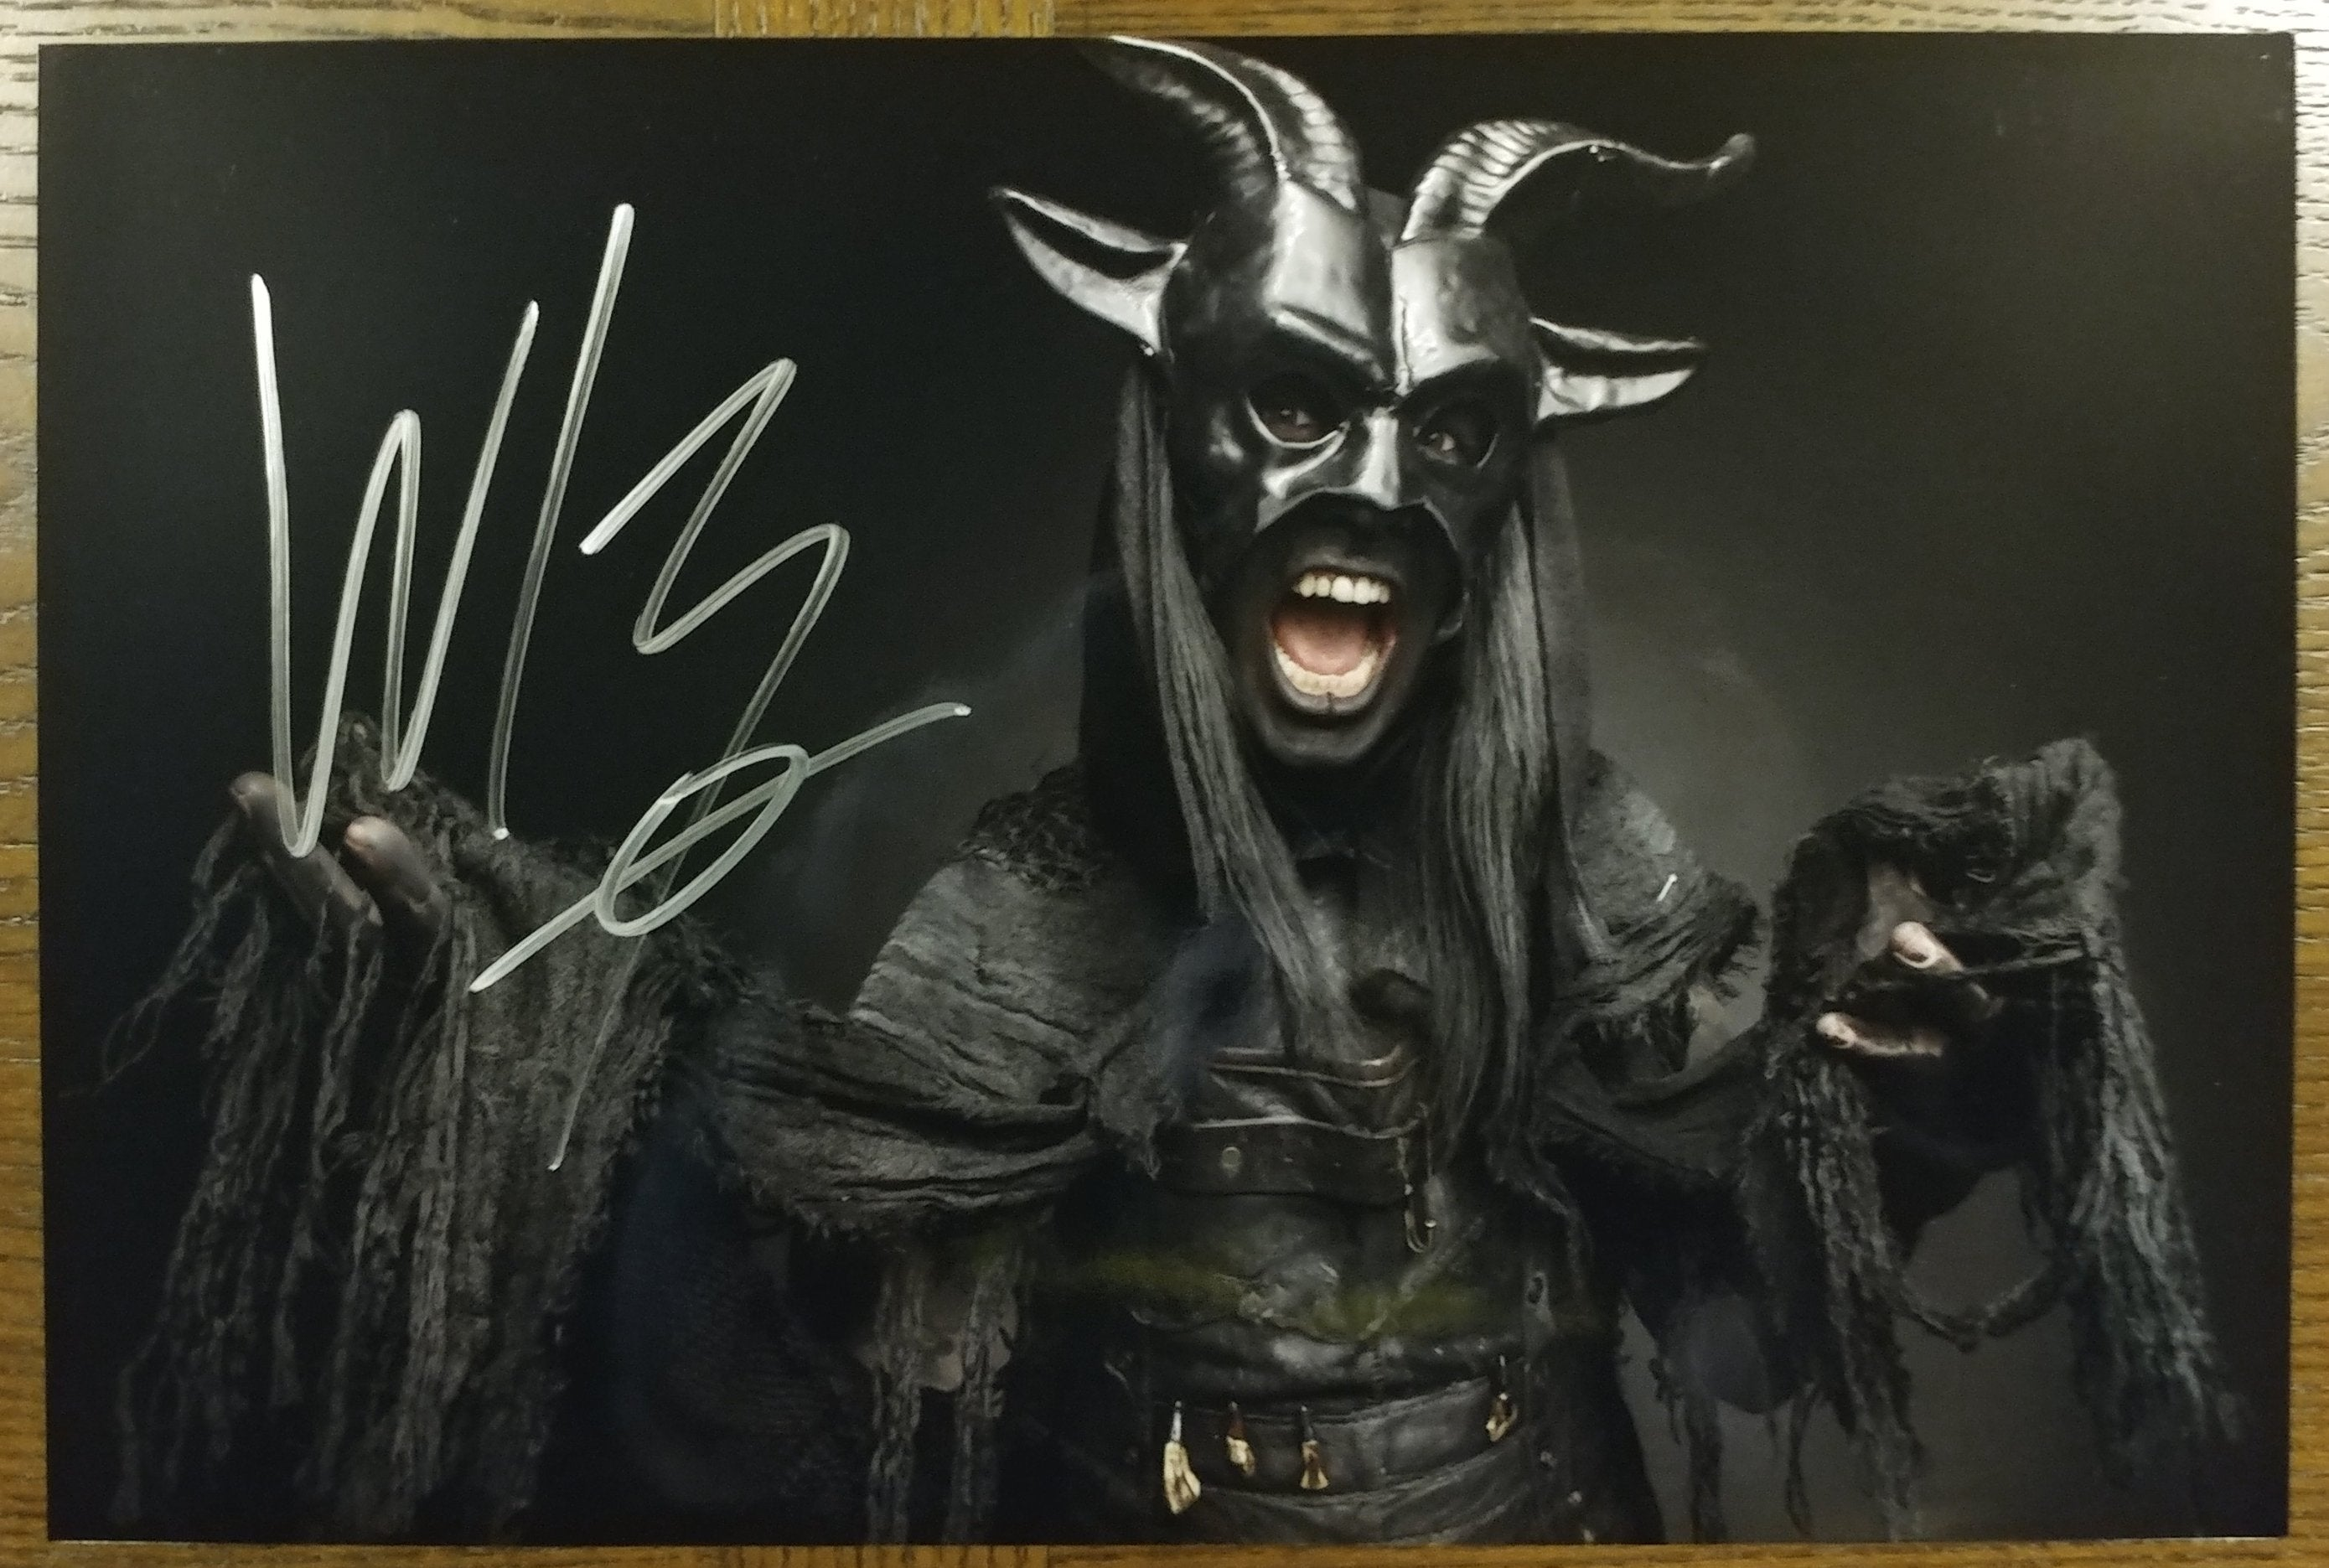 Wednesday 13 - Baphomet - signed limited edition 8x12 metallic print (2 LEFT!)